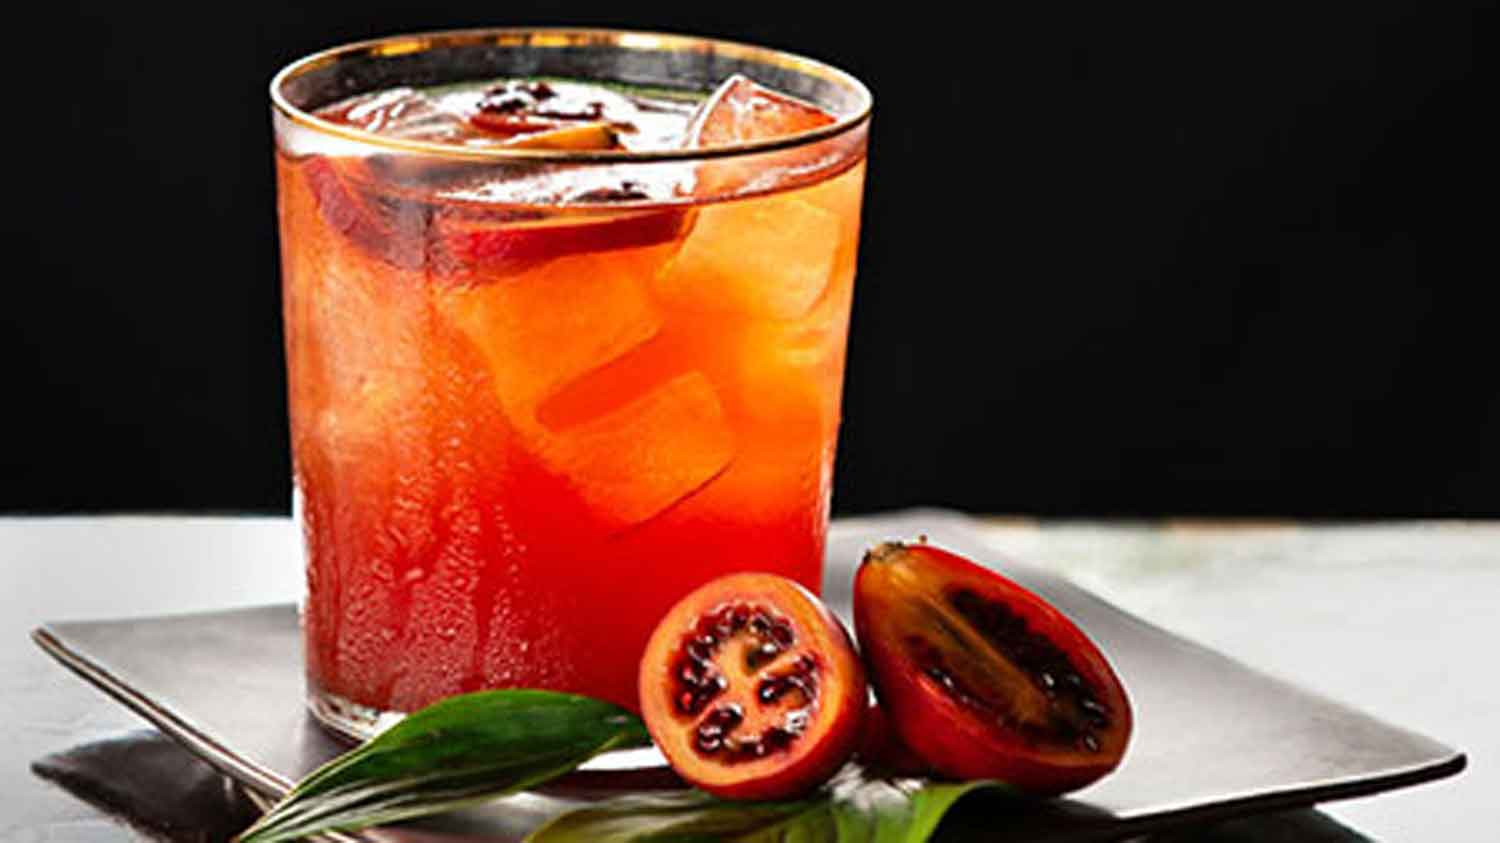 press-release-tamarin-negroni-featured-image